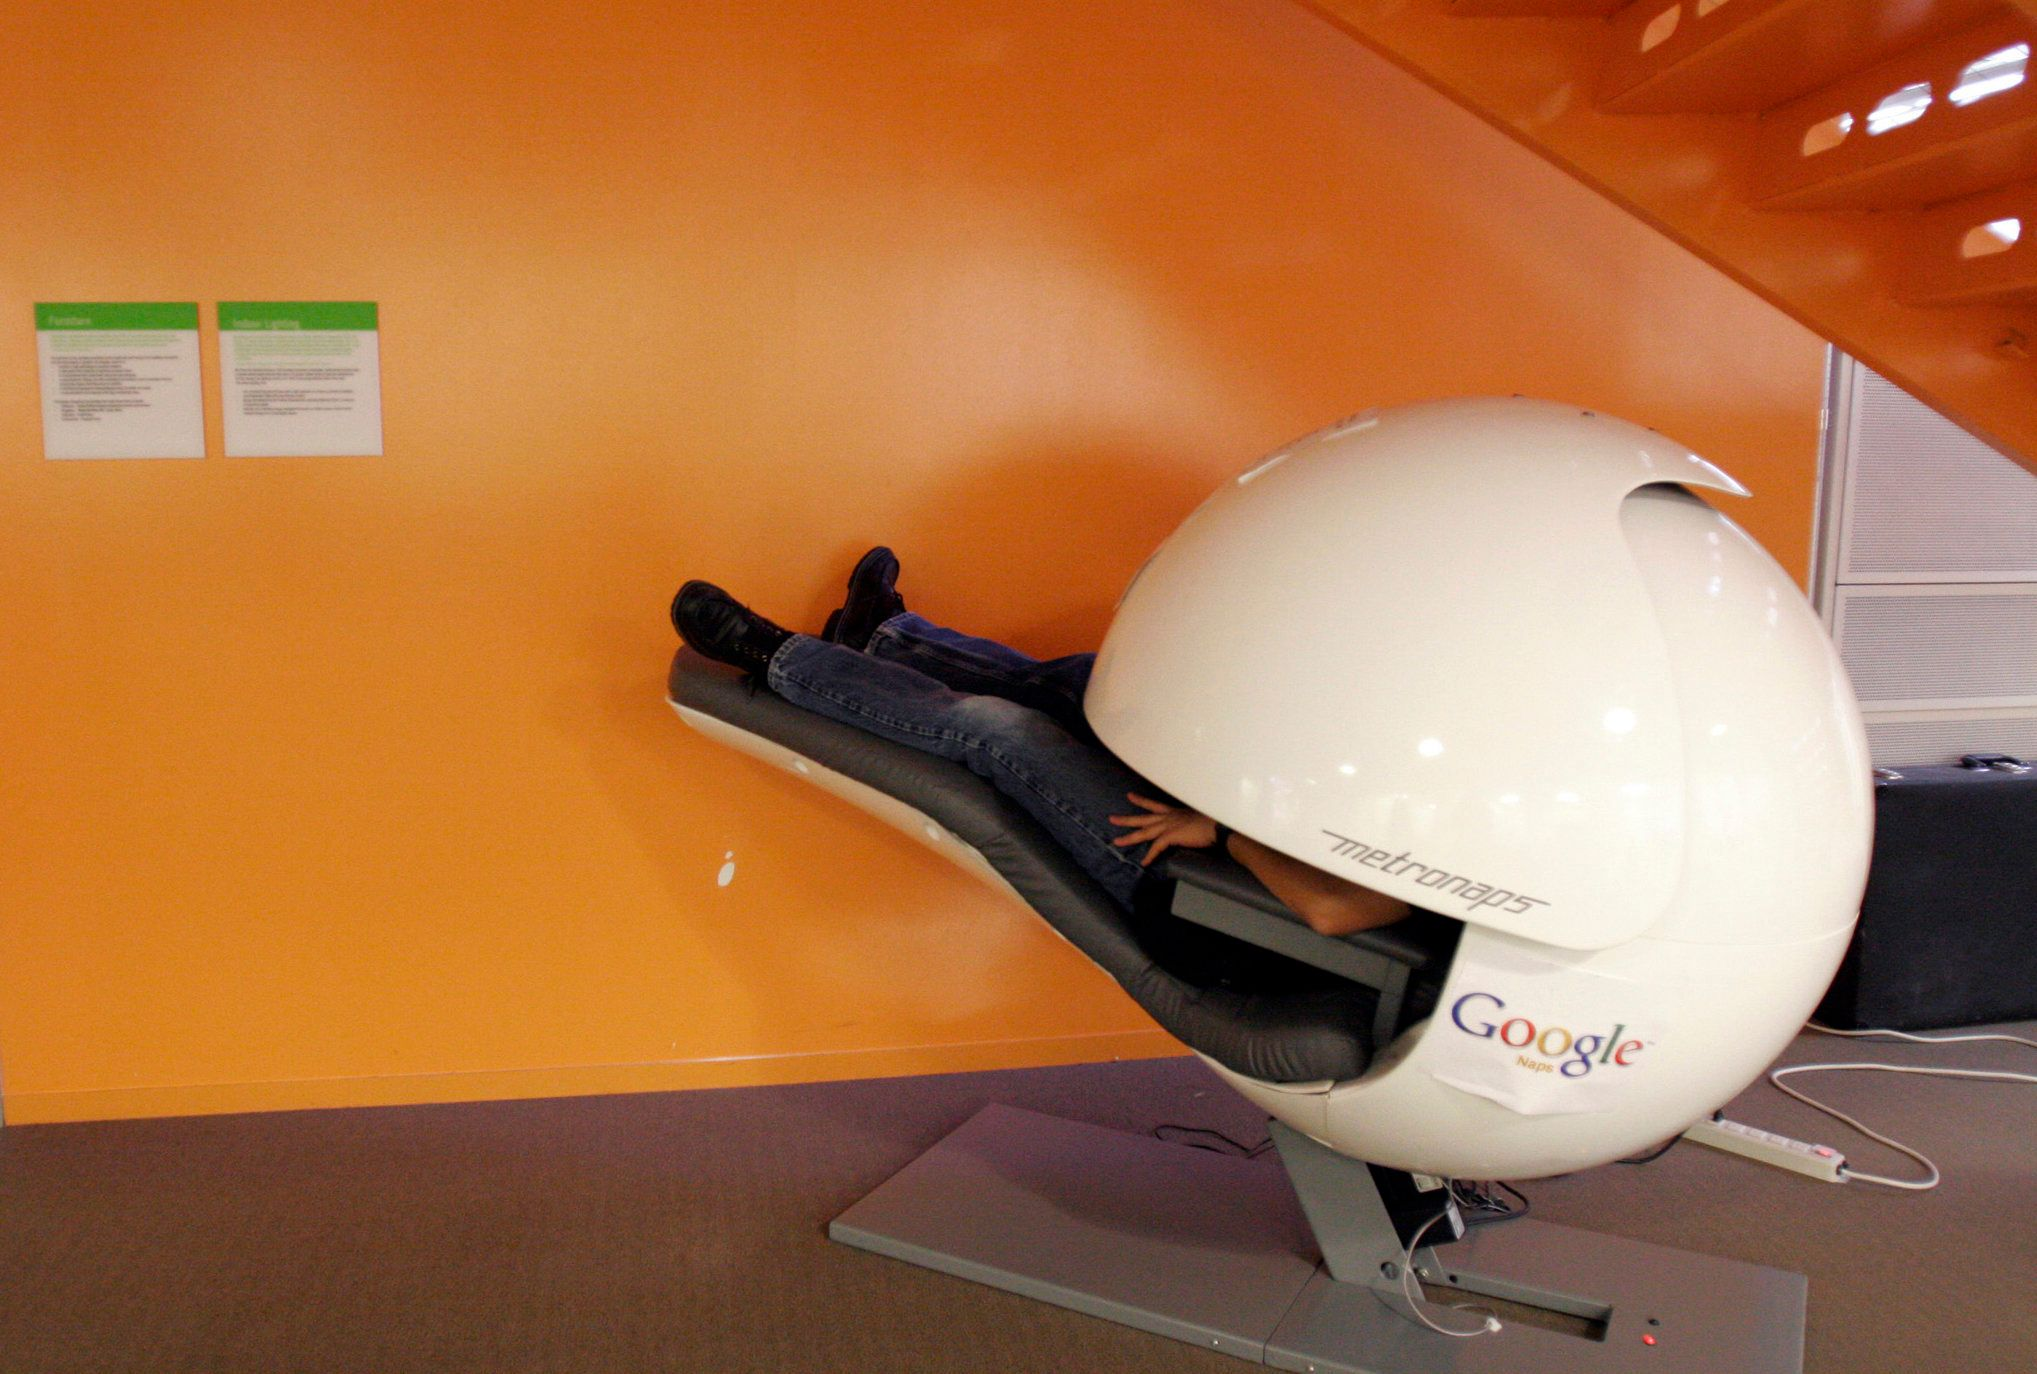 An employee takes a nap in a nap pod which blocks out light and sound at the Google headquarters in Mountain View, California March 3, 2008. REUTERS/Erin Siegal (UNITED STATES)